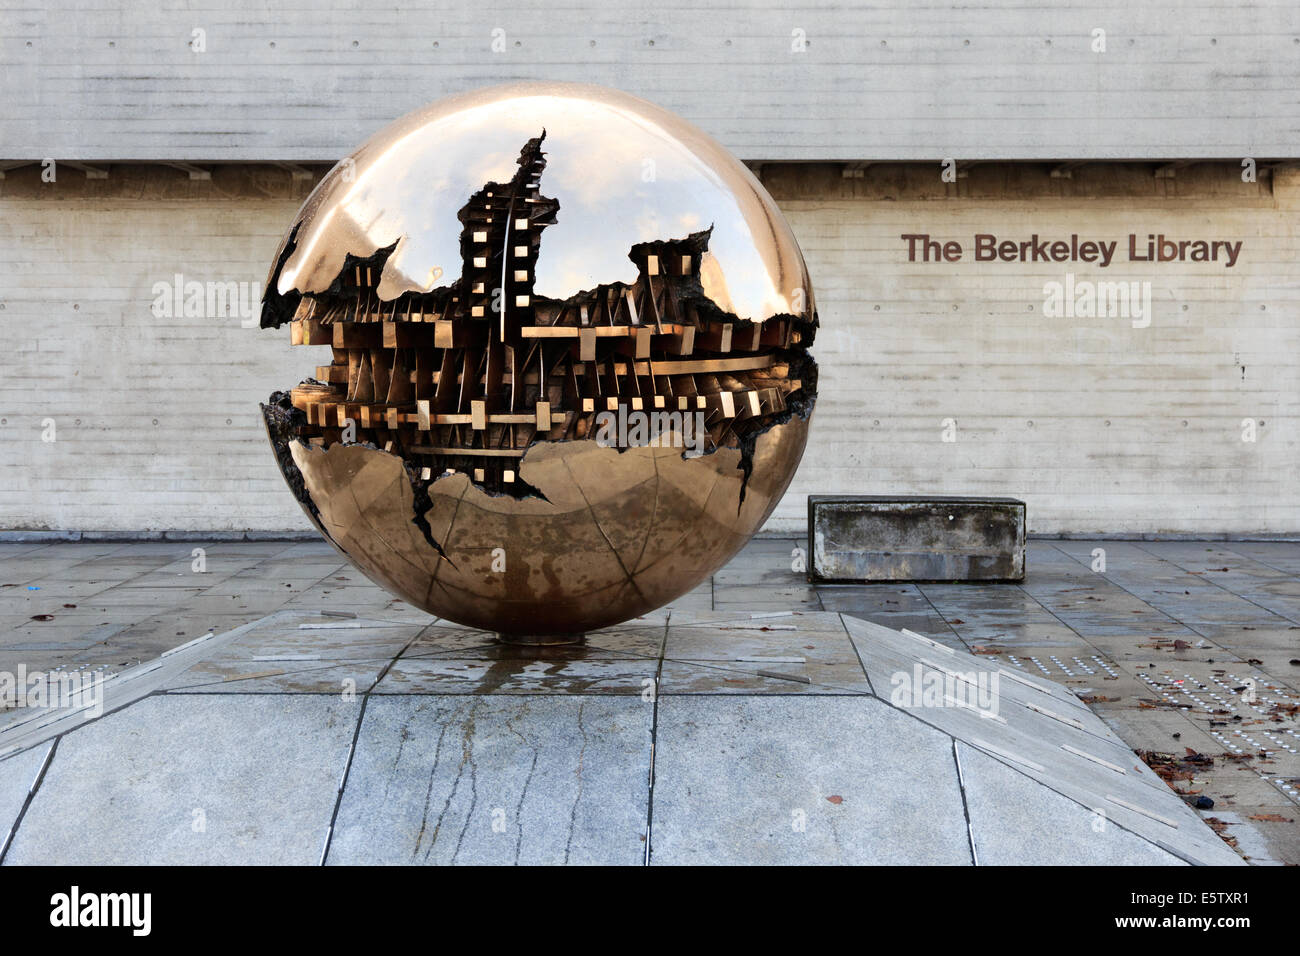 Abstract spherical metal sculpture on a courtyard of Trinity College in Dublin, Ireland. - Stock Image